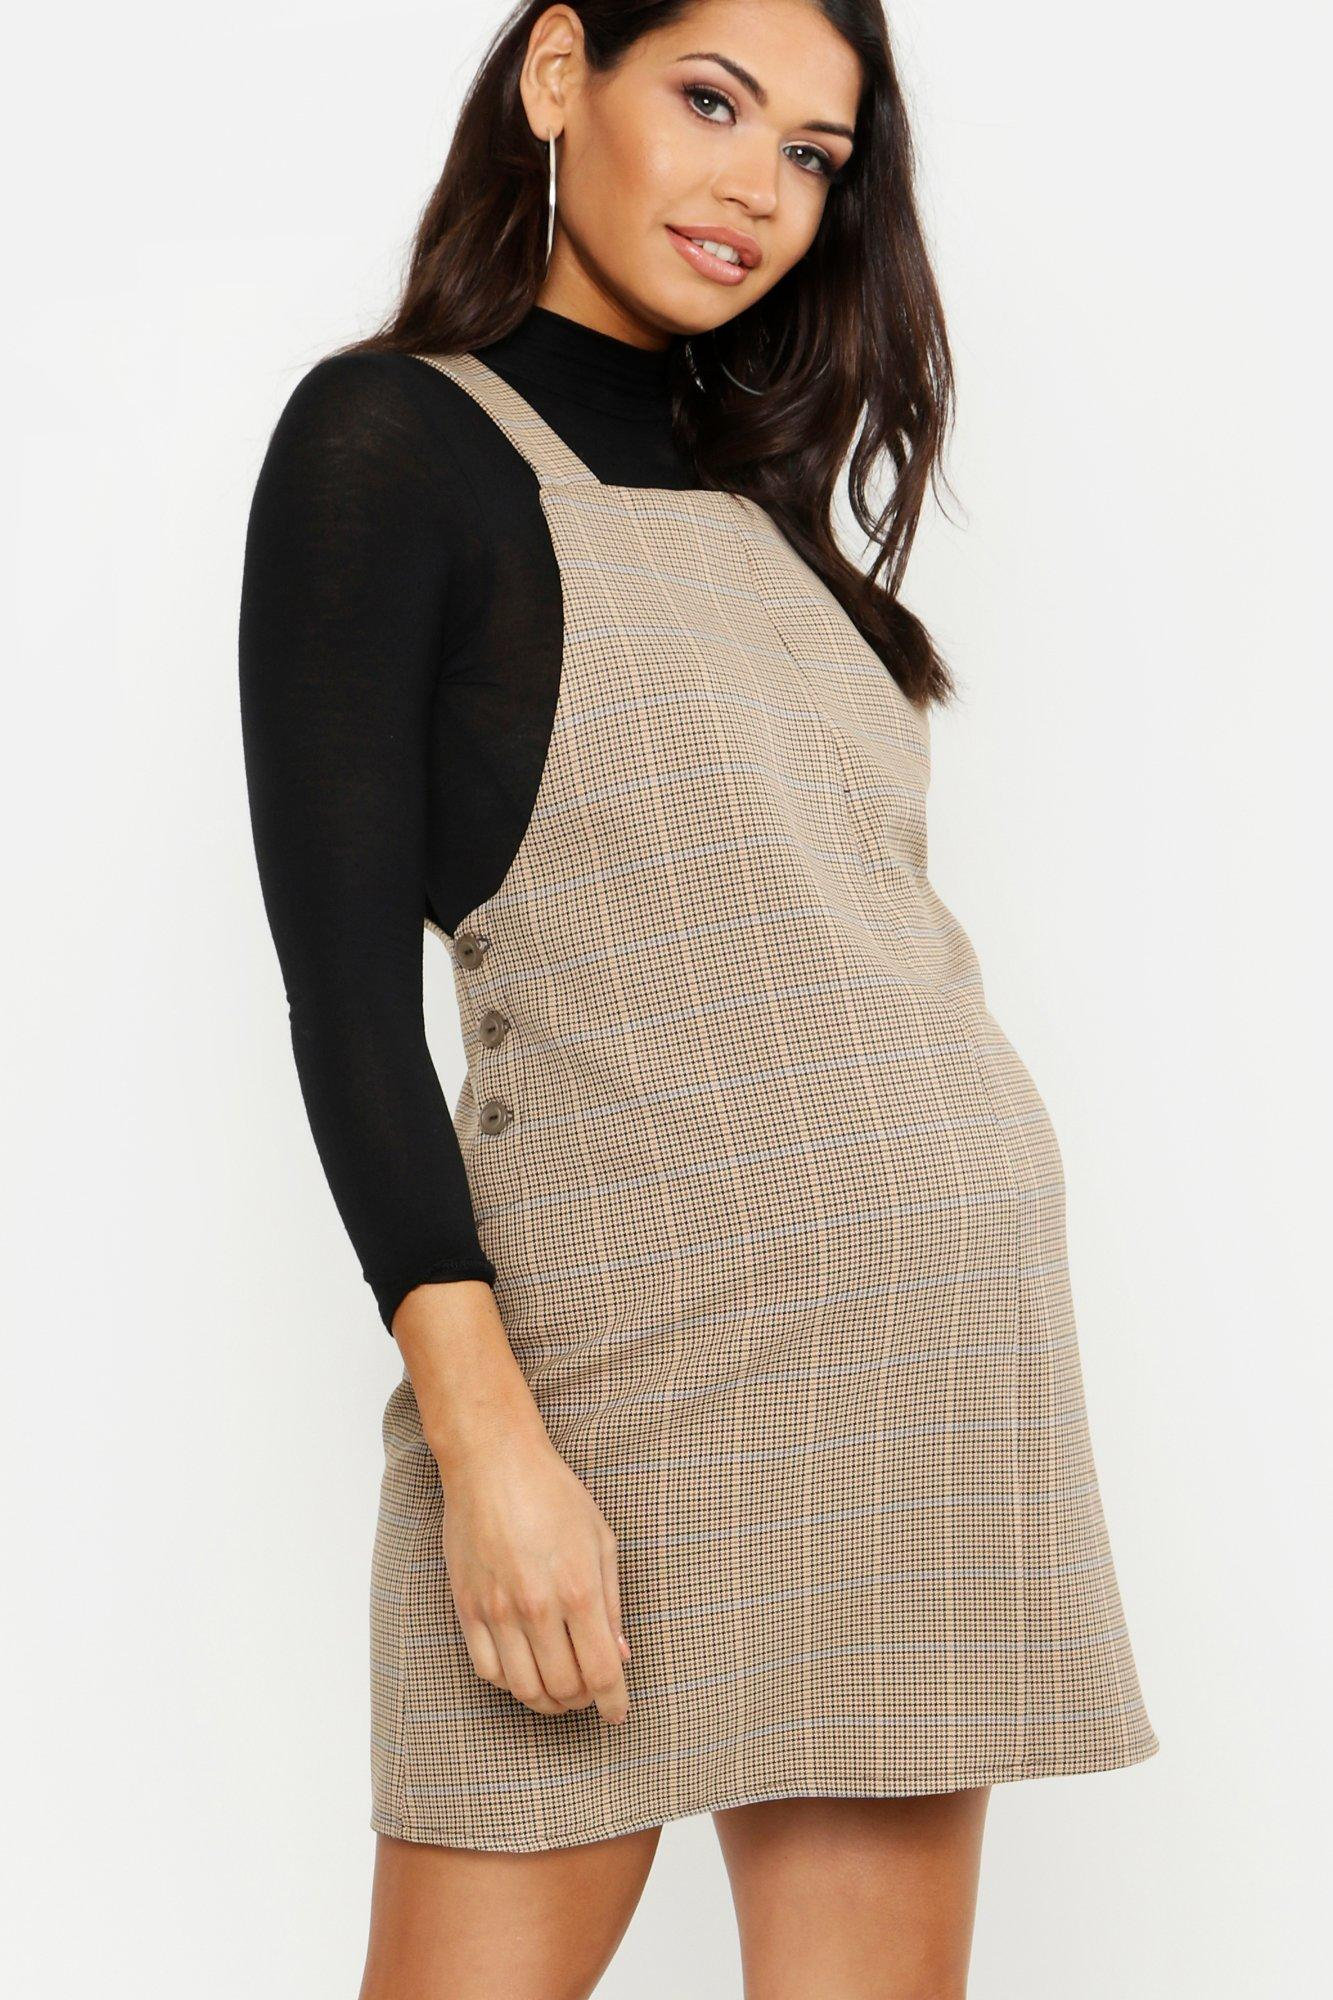 Vintage Maternity Clothes History Maternity Check Grow With Me Pinafore Dress $36.00 AT vintagedancer.com